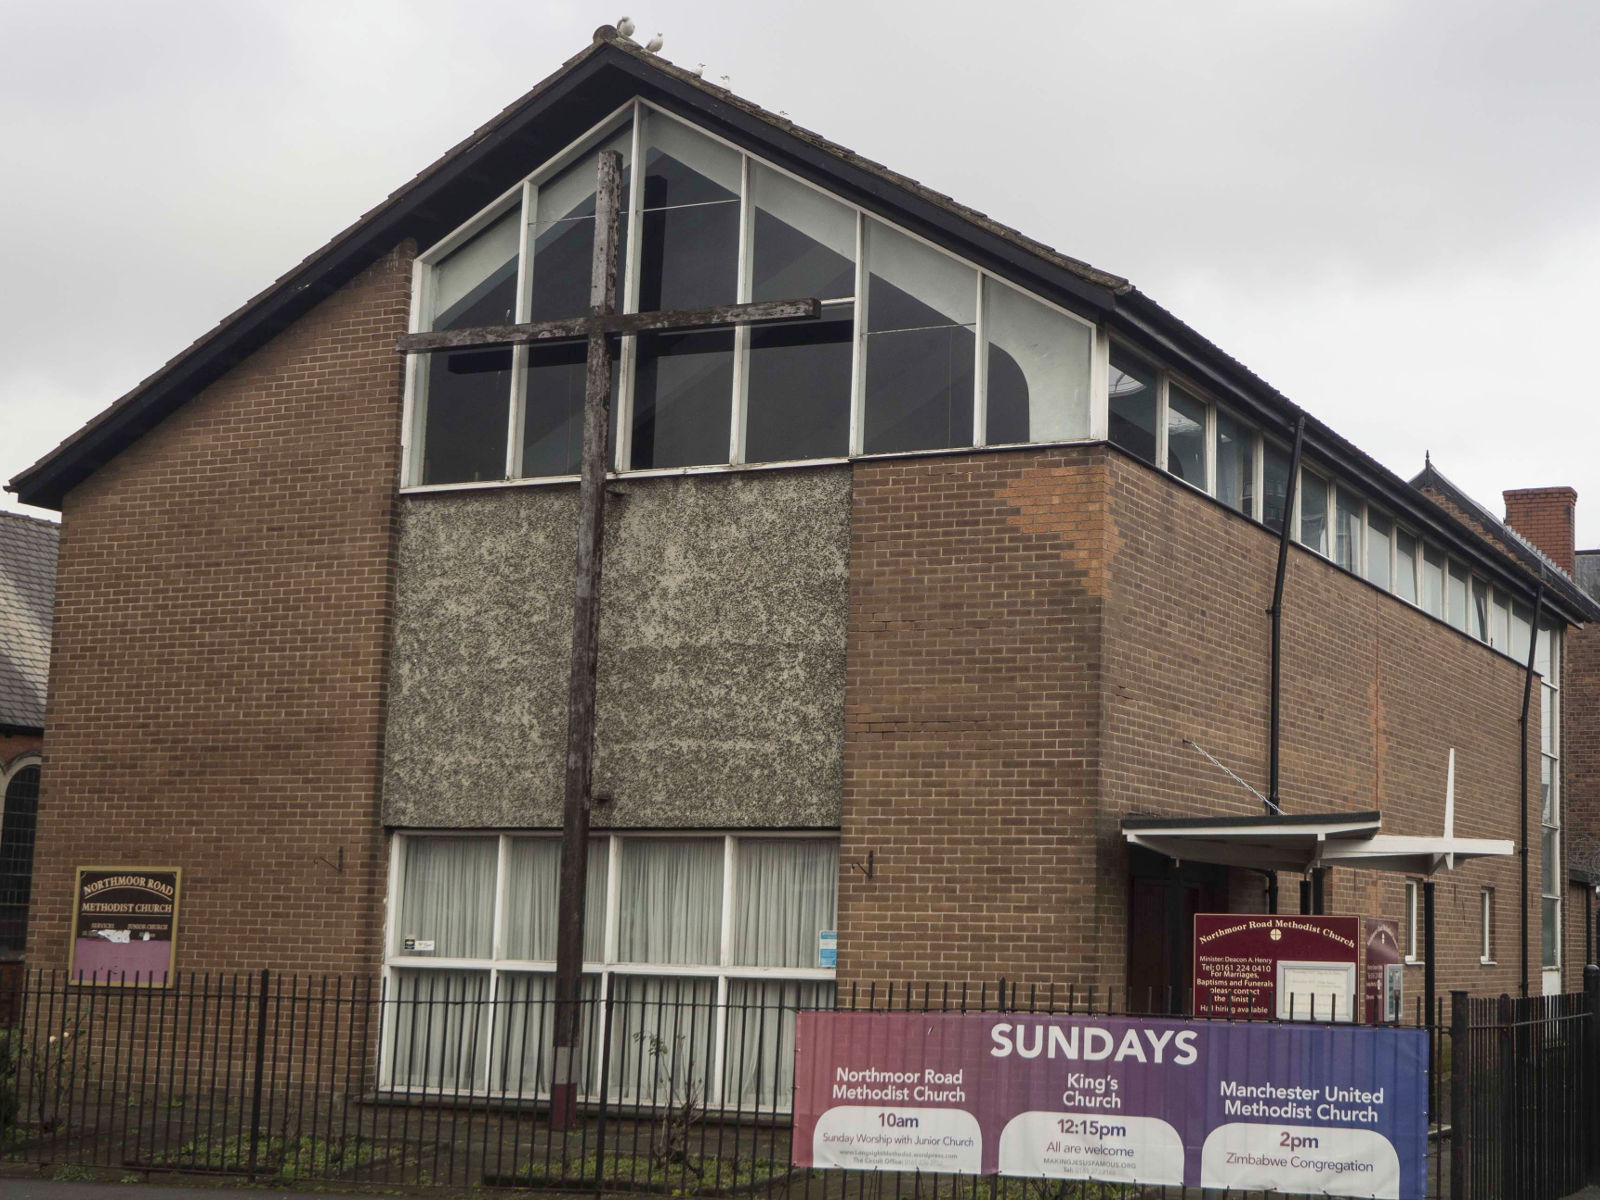 Northmoor Road Methodist Church